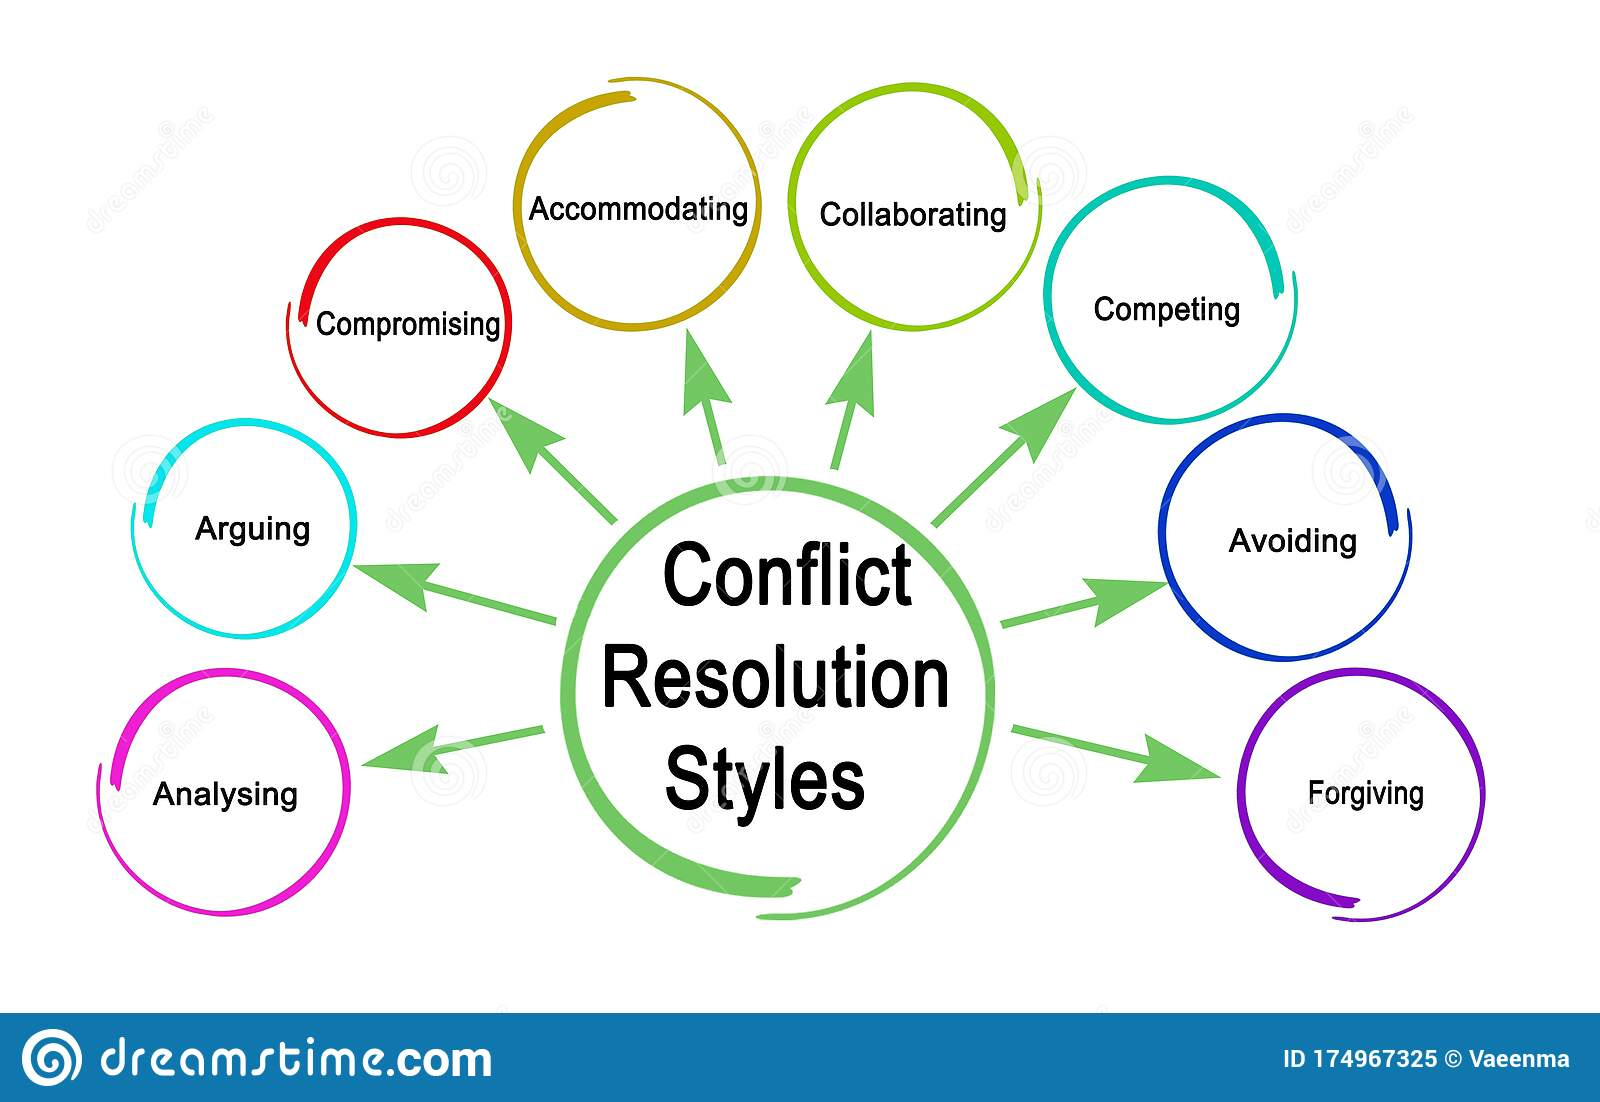 Styles Of Conflict Resolution Stock Illustration